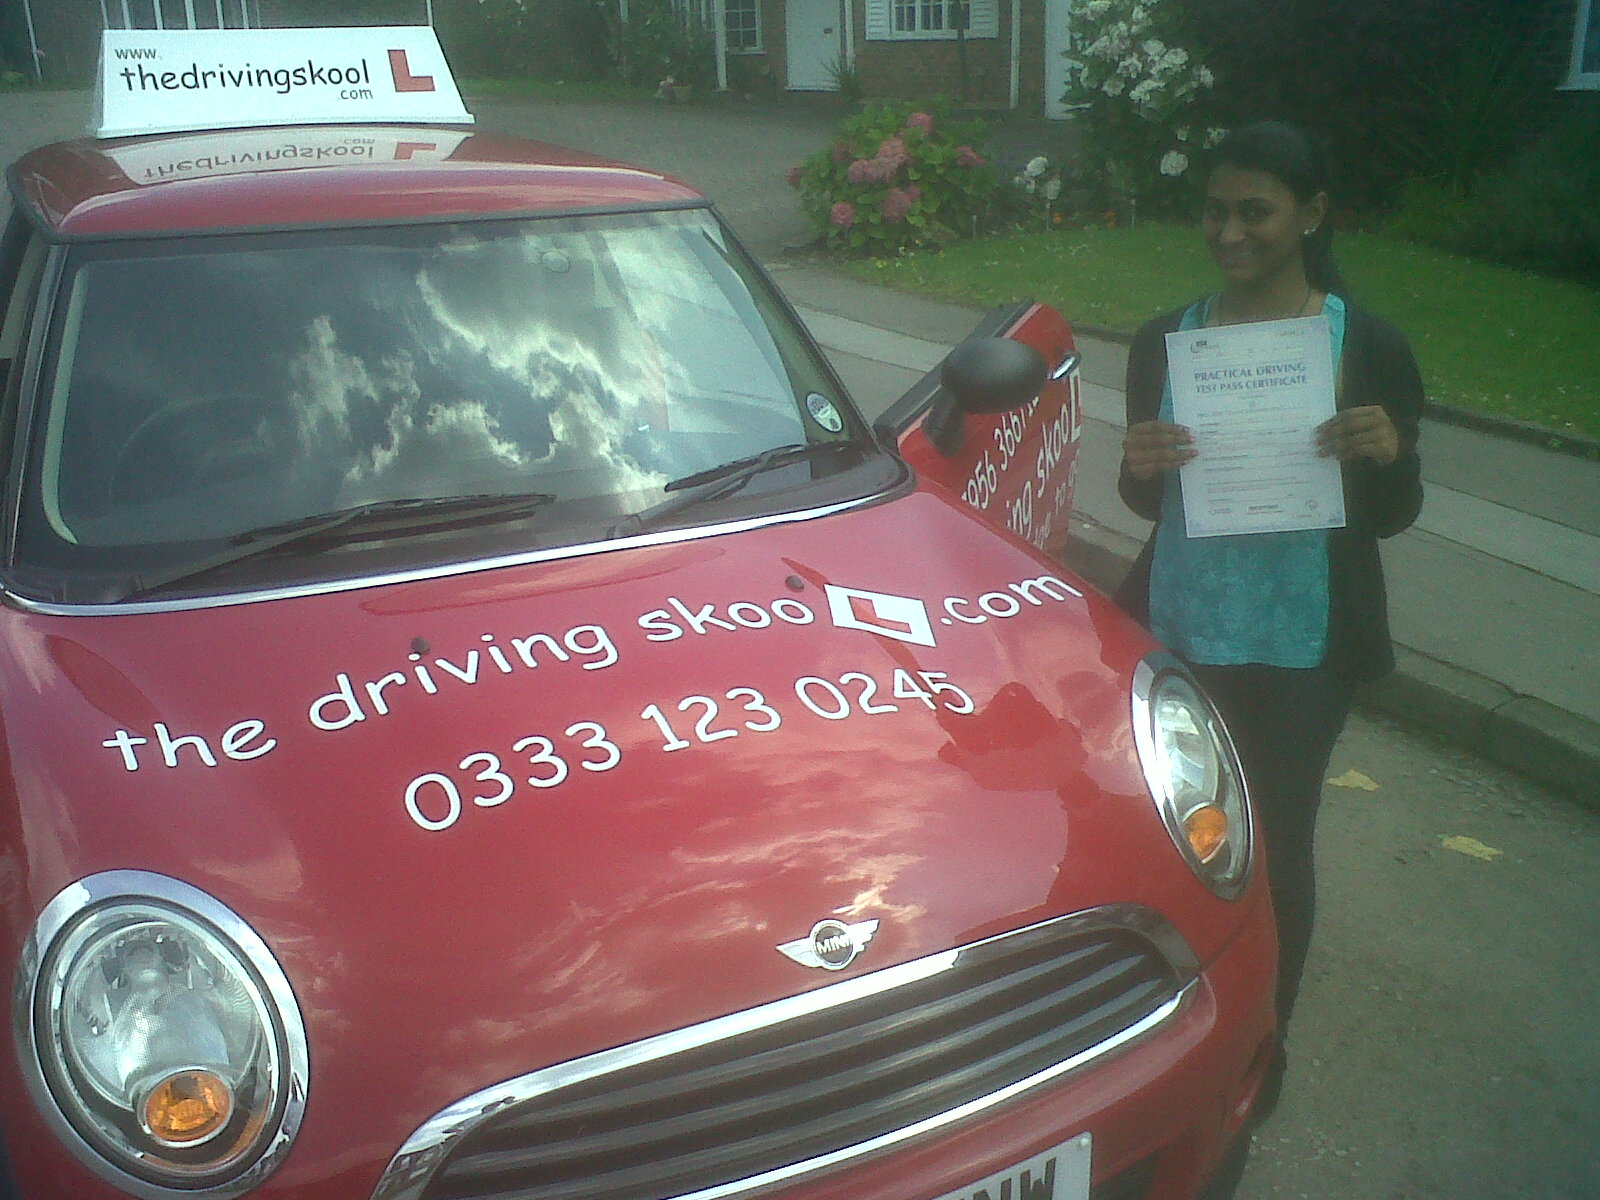 Sidcup driving lessons and intensive courses